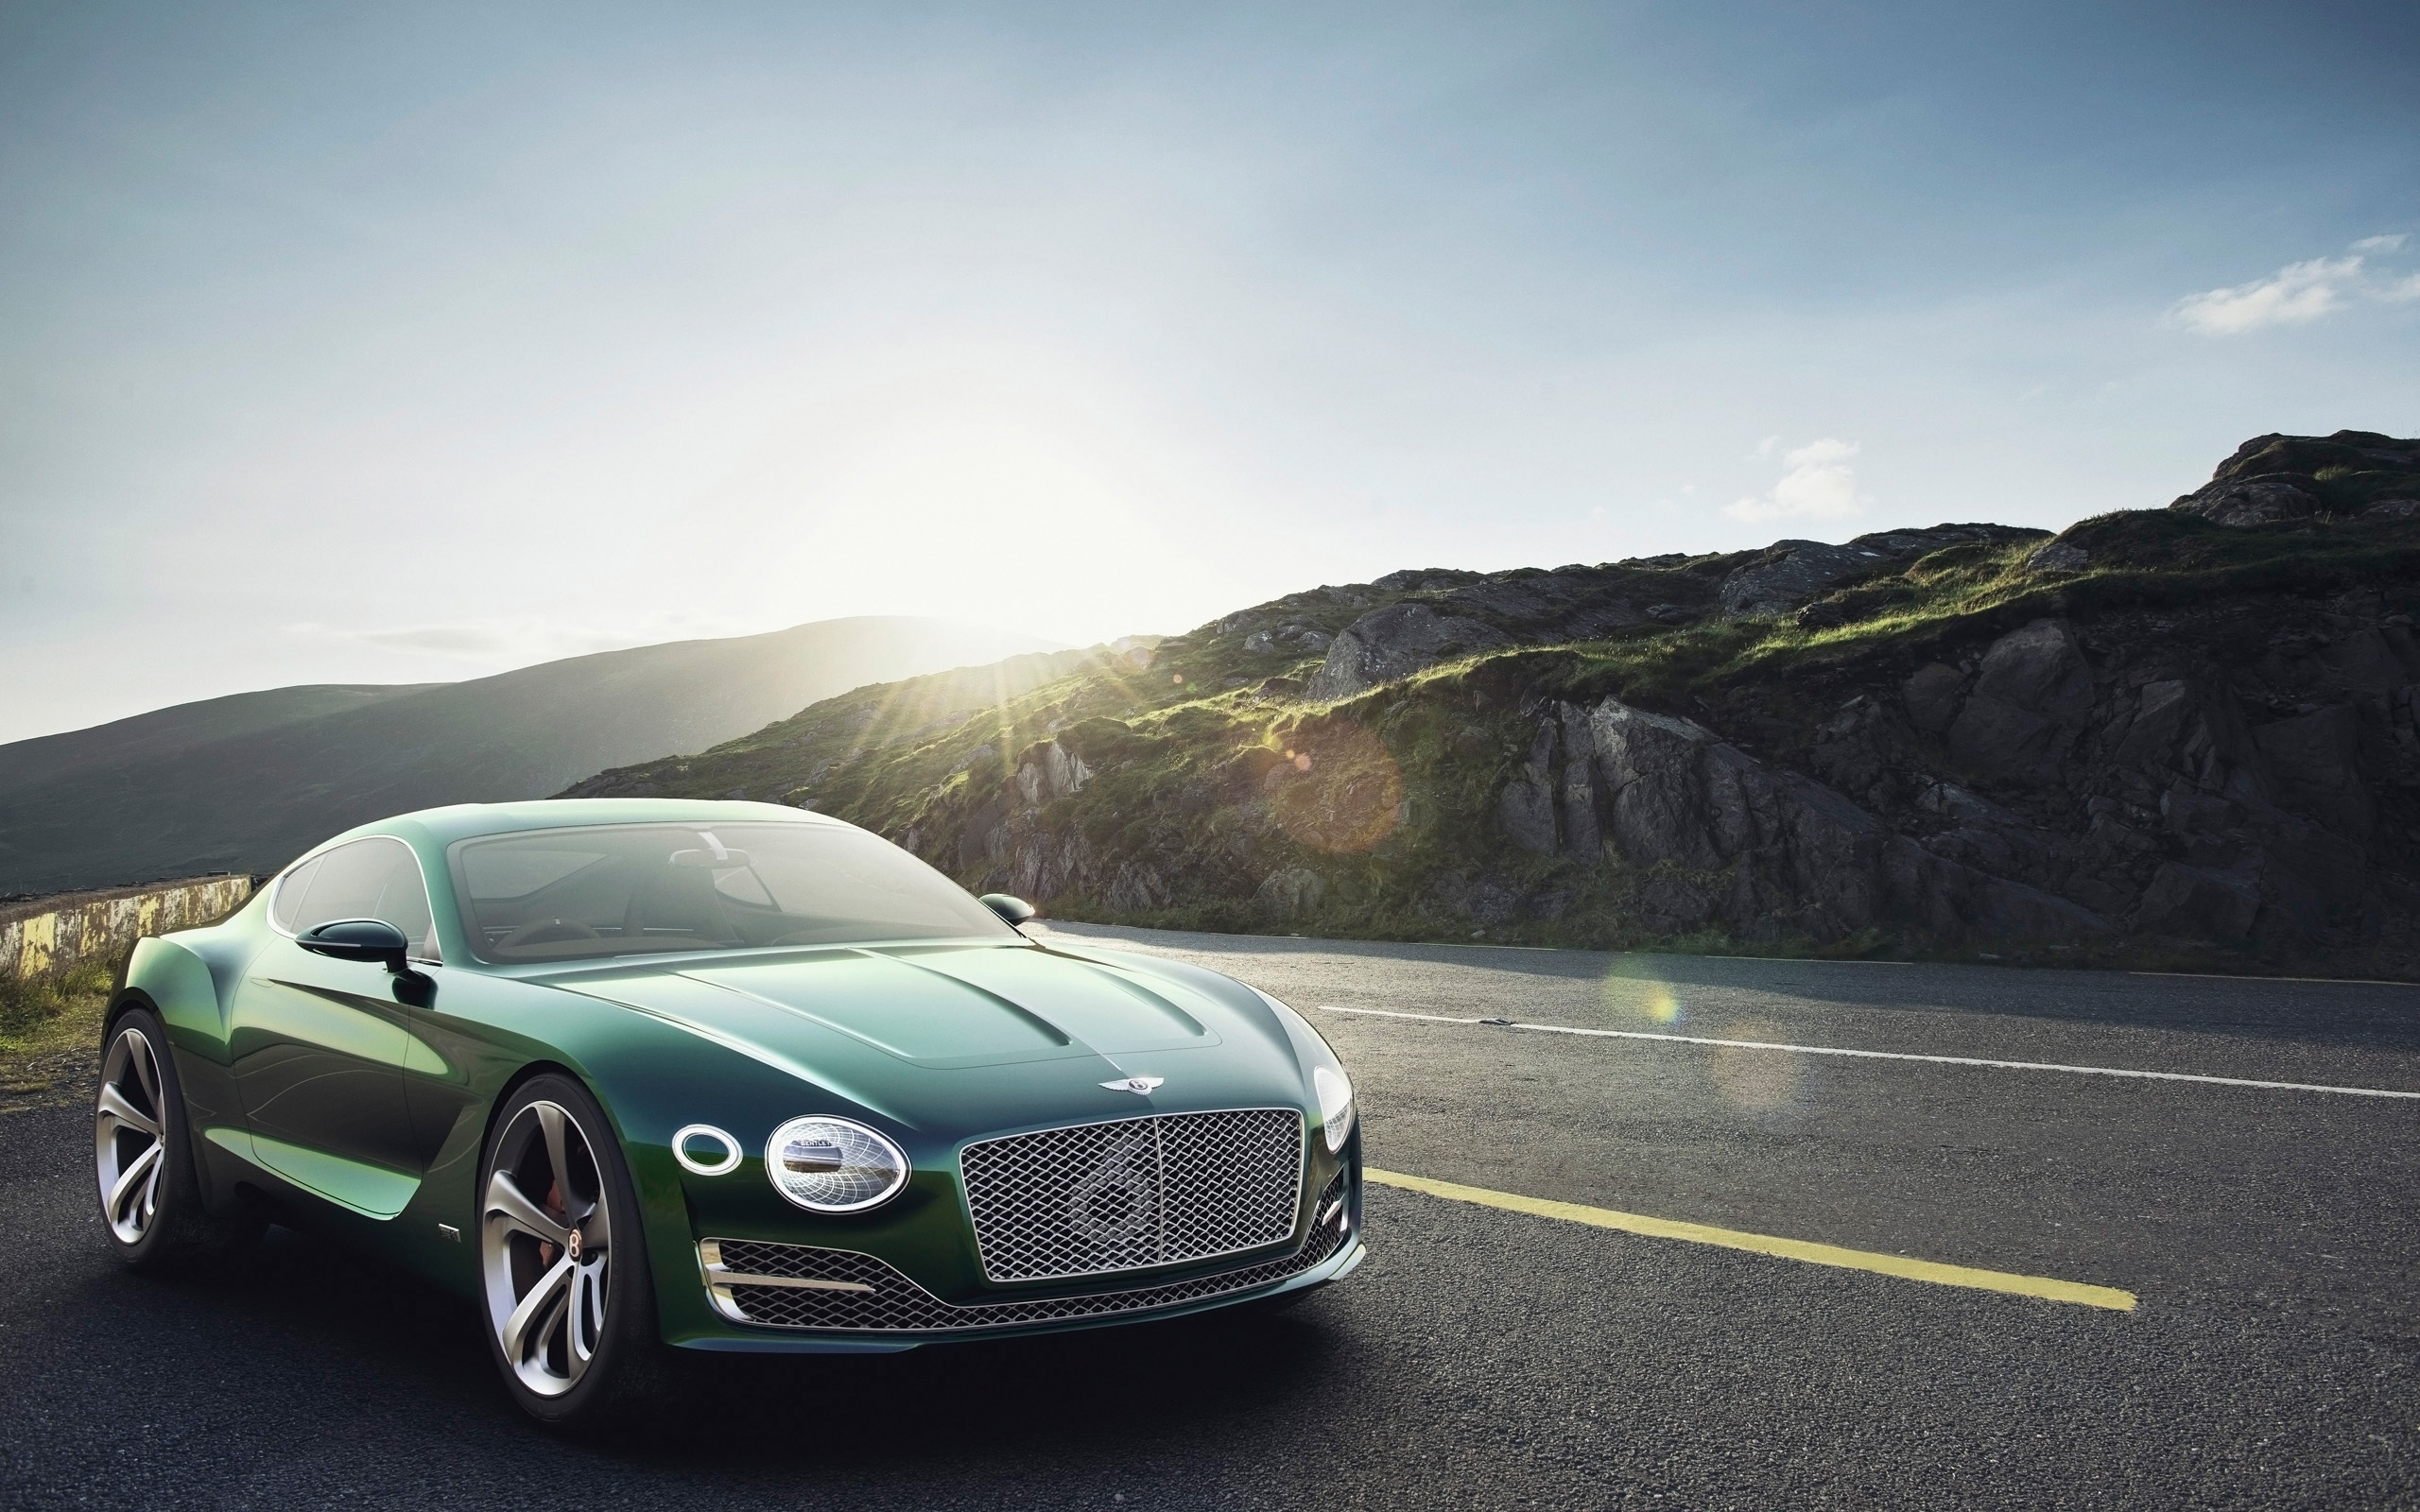 HD Wallpapers 2015 Bentley EXP 10 Speed 6 Concept Car